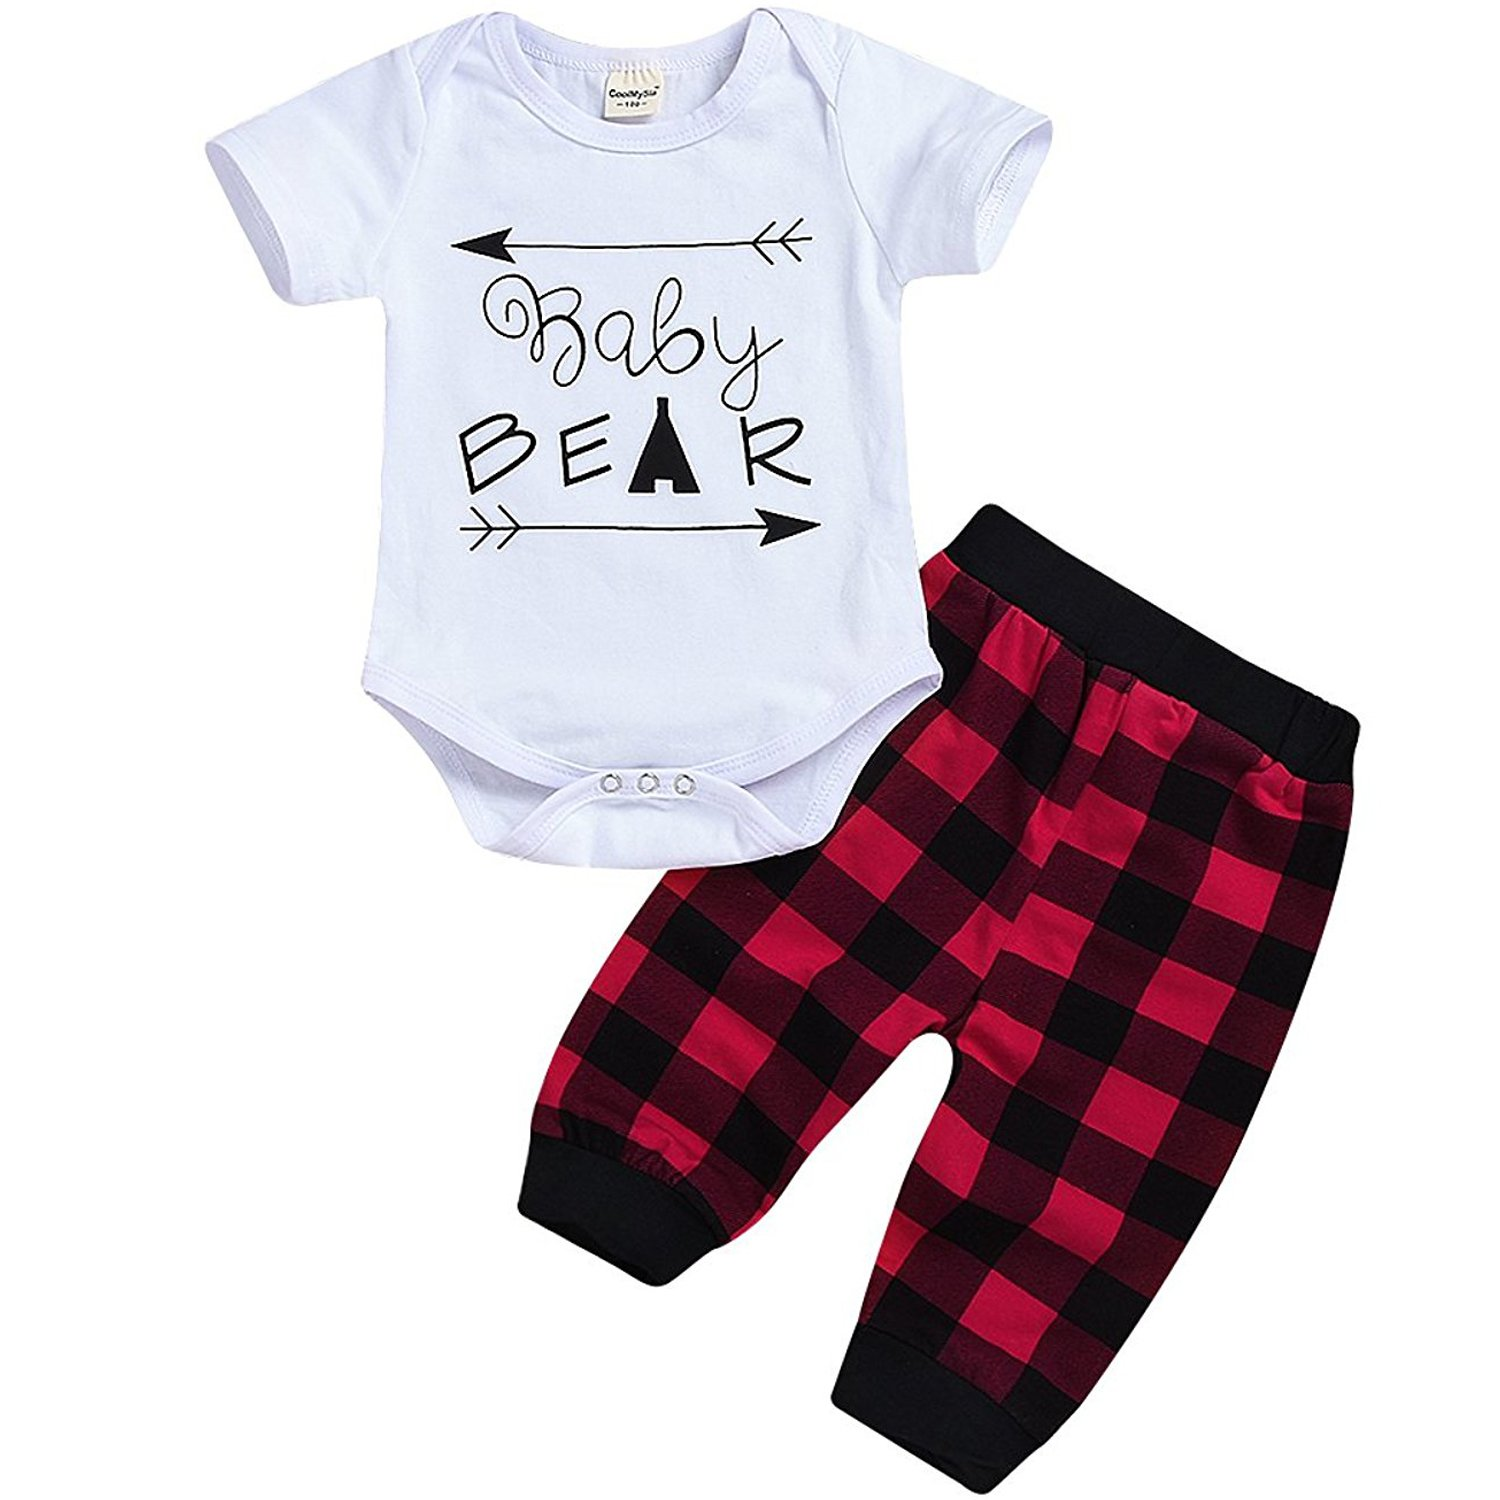 HappyMA Newborn Infant Baby Boy Girl Outfits Baby Bear Romper+Plaid Pants Summer Clothes (White Short, 0-3 Months)